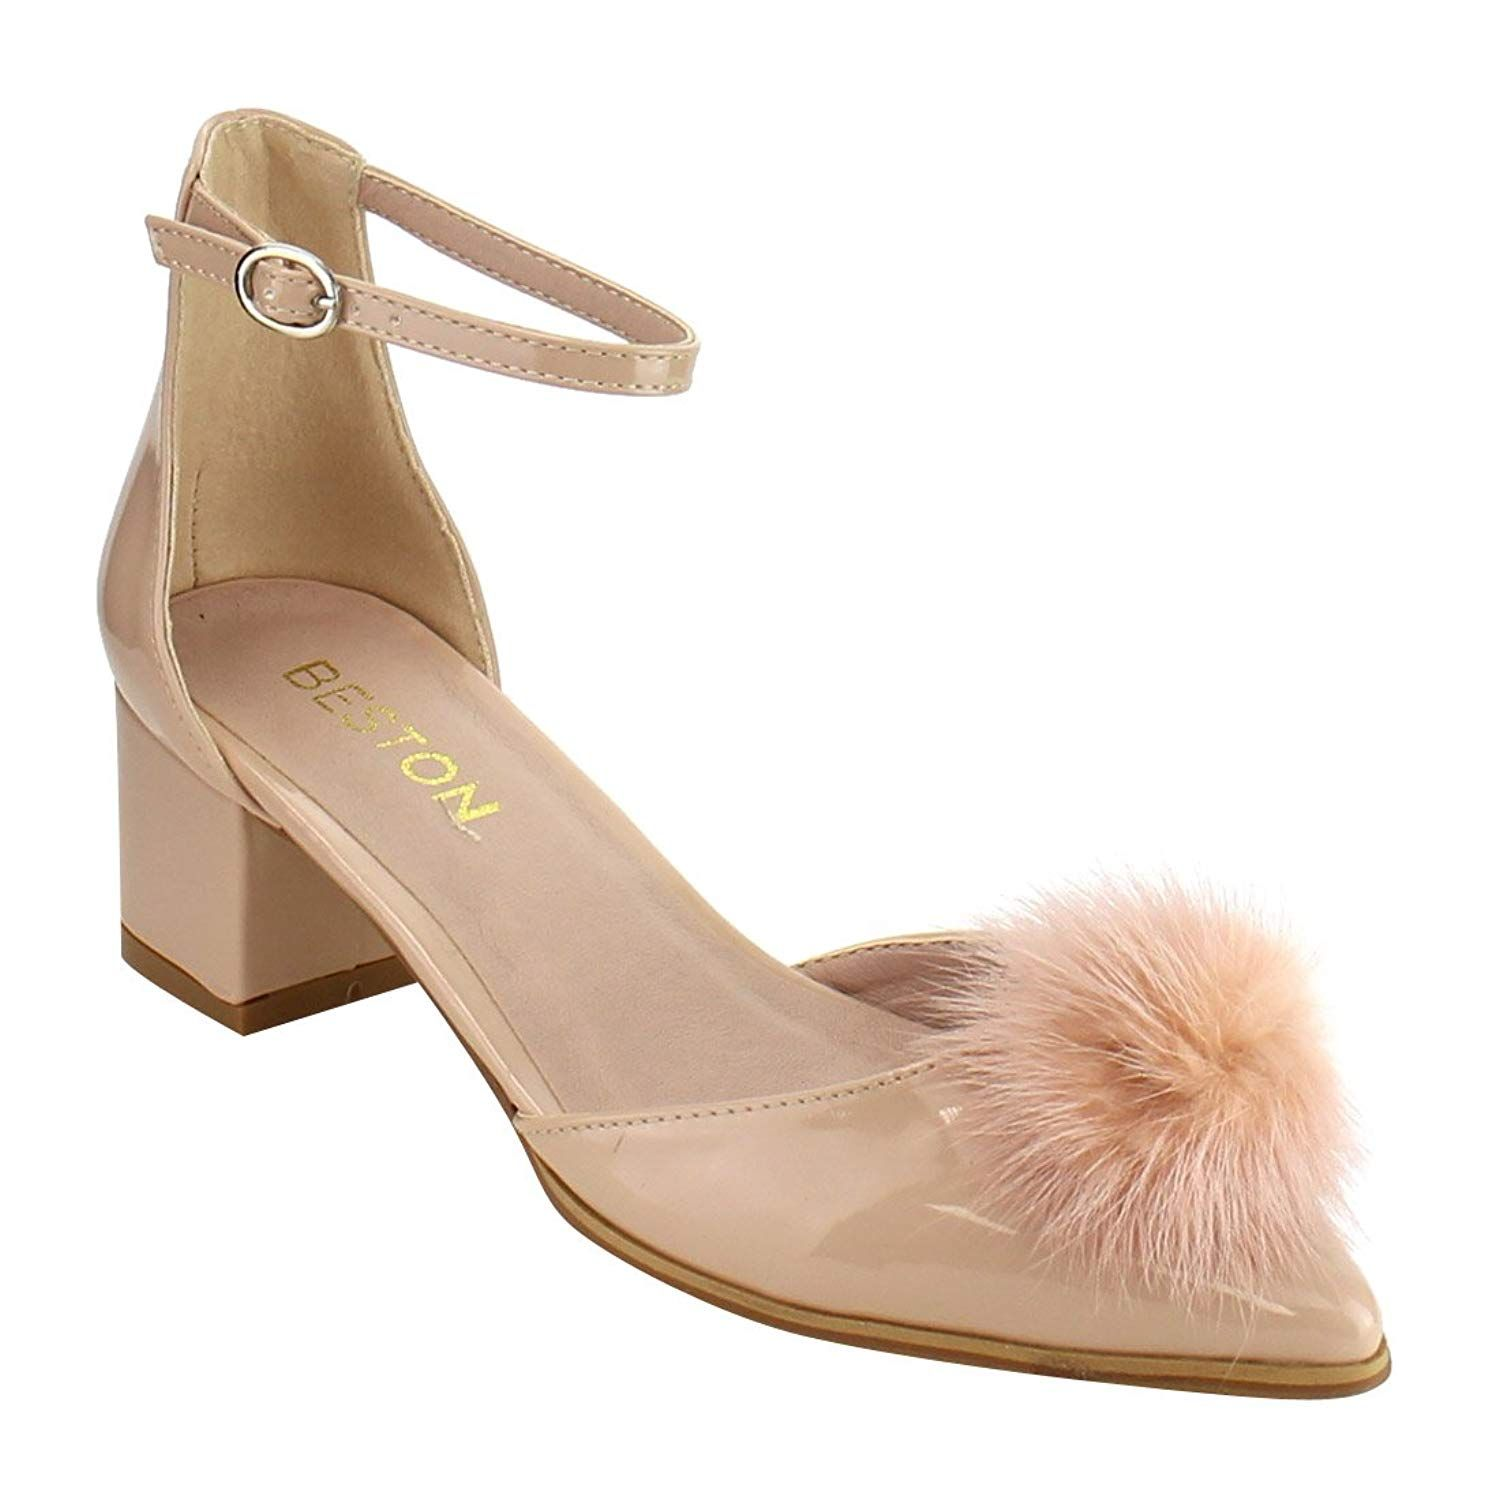 8371330f665 Ruiyue Sandals Women s Pom Pom Ankle Strap D Orsay Chunky Heel Dress Pumps.  These gorgeous pumps feature a pointy toe silhouette